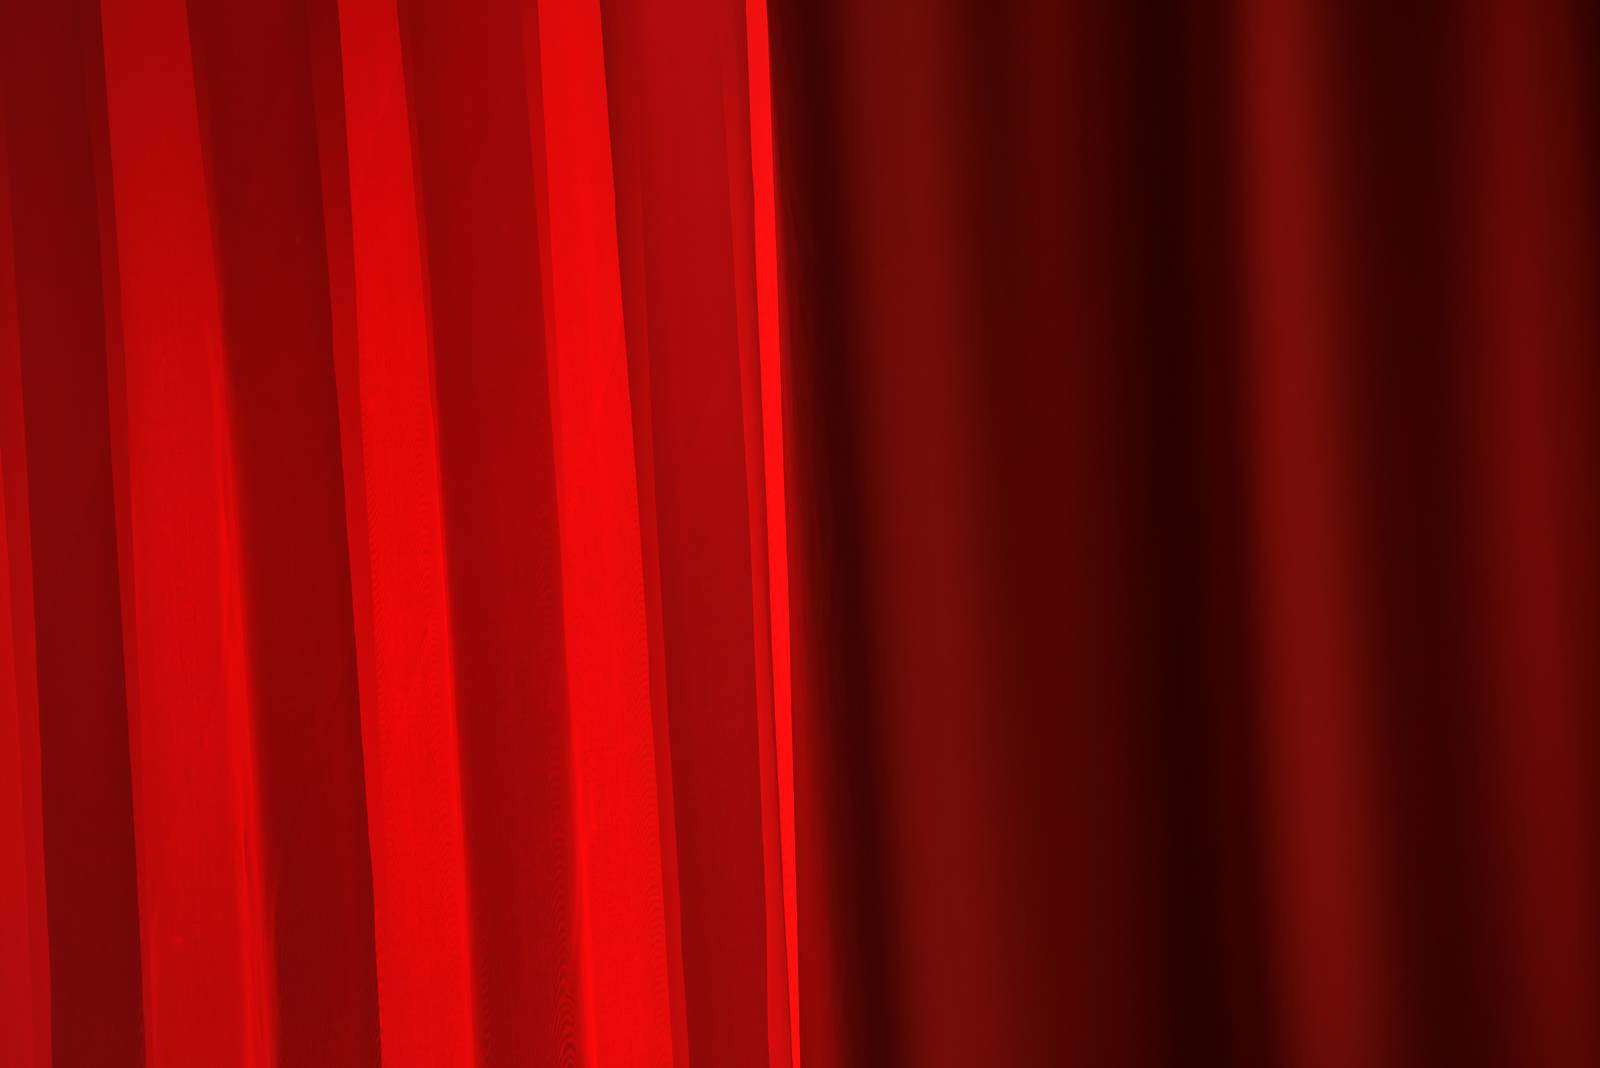 red curtain, theater, curtains, abstract, entertainment, background - D22933362